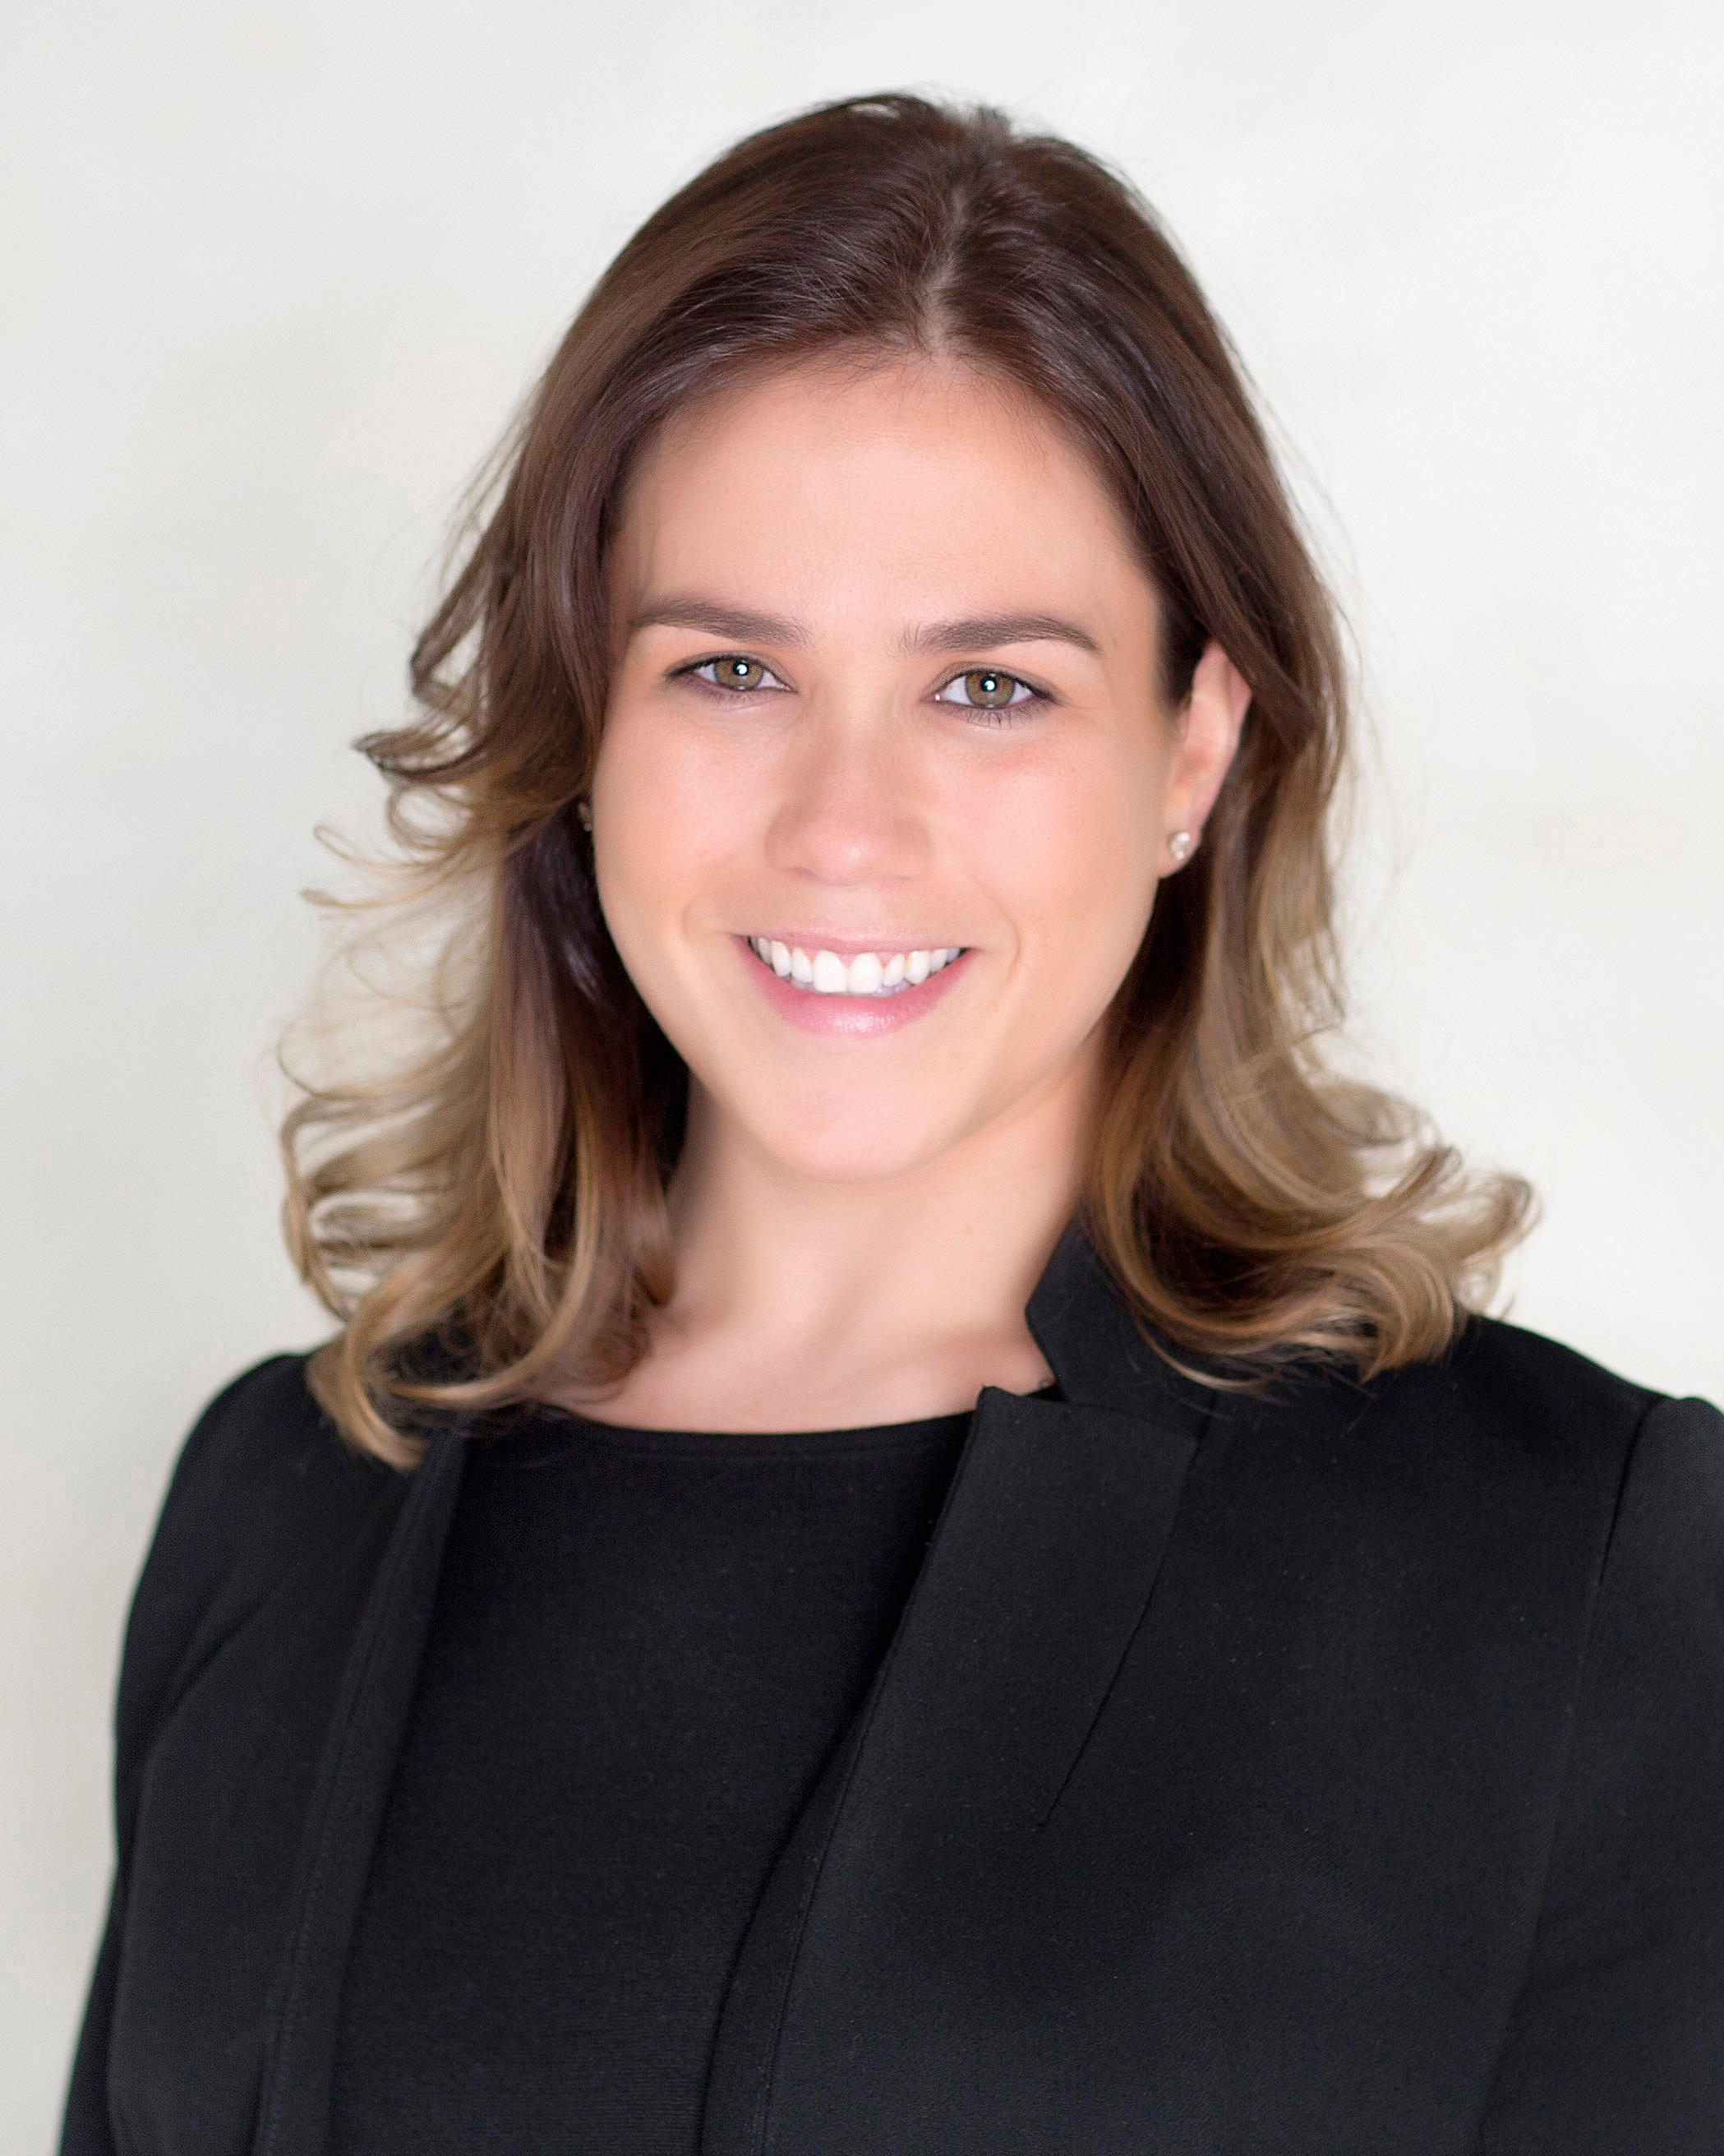 Michal Lipshitz earned her Juris Doctorate degree from Hofstra University School of Law where she was a clinician in the Mediation Clinic and a member of the Jewish Law Student Association and the Spo